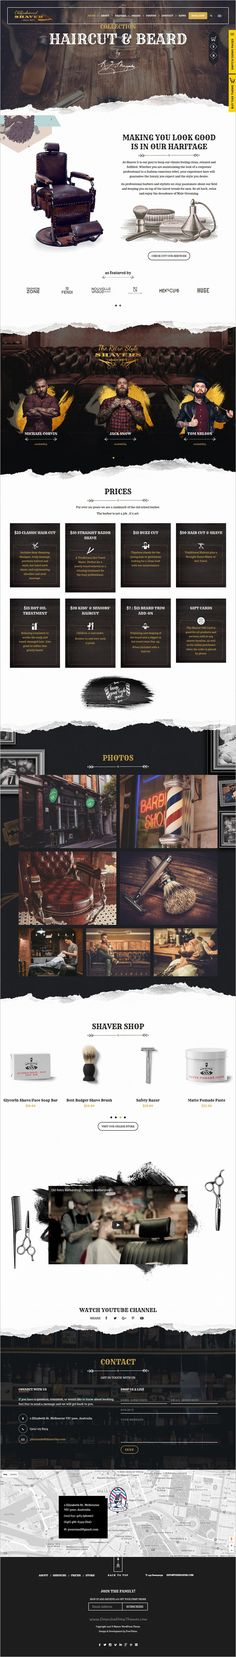 Buy Shaver - Barbers & Hair Salon WordPress Theme by freevision on ThemeForest. The Shaver is a Premium WordPress Theme, suitable for hair salons, beauty salons and hairdresser. Layout Site, Website Layout, Web Layout, Web Design Tips, Page Design, Blog Design, Design Design, Design Tutorials, Design Projects